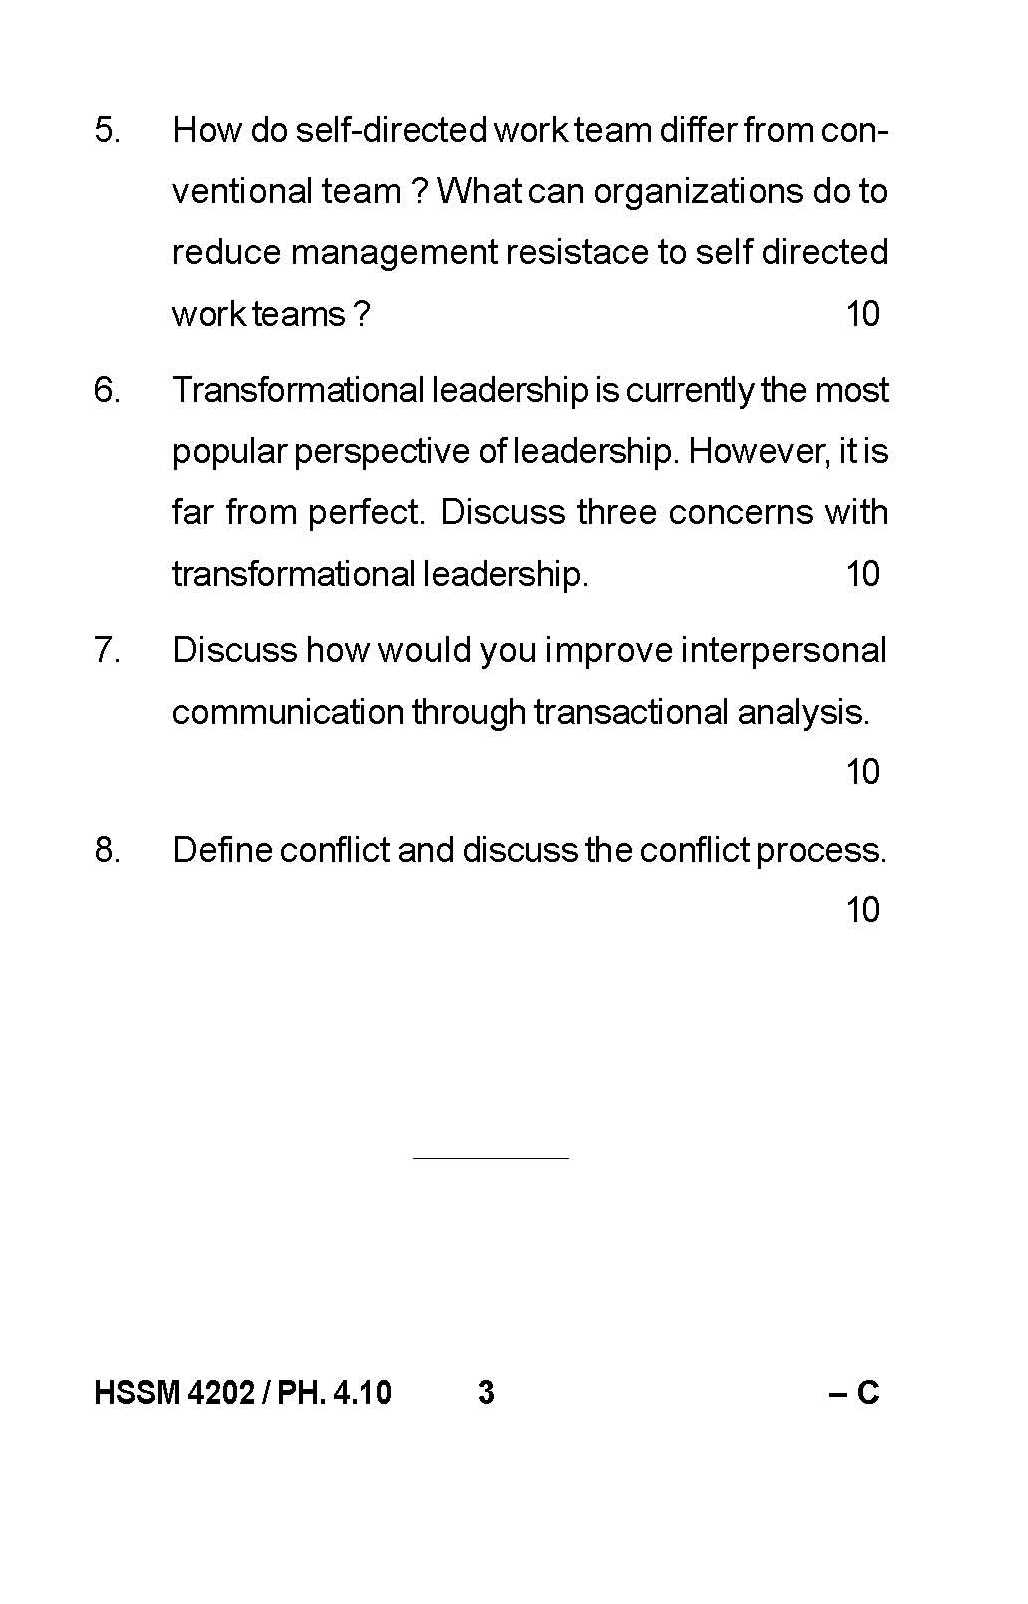 organizational behaviour essay questions Surefire job interview answers that will get you hired - job interview skills - duration: 10:43 skillopedia - skills for the real world 113,190 views.